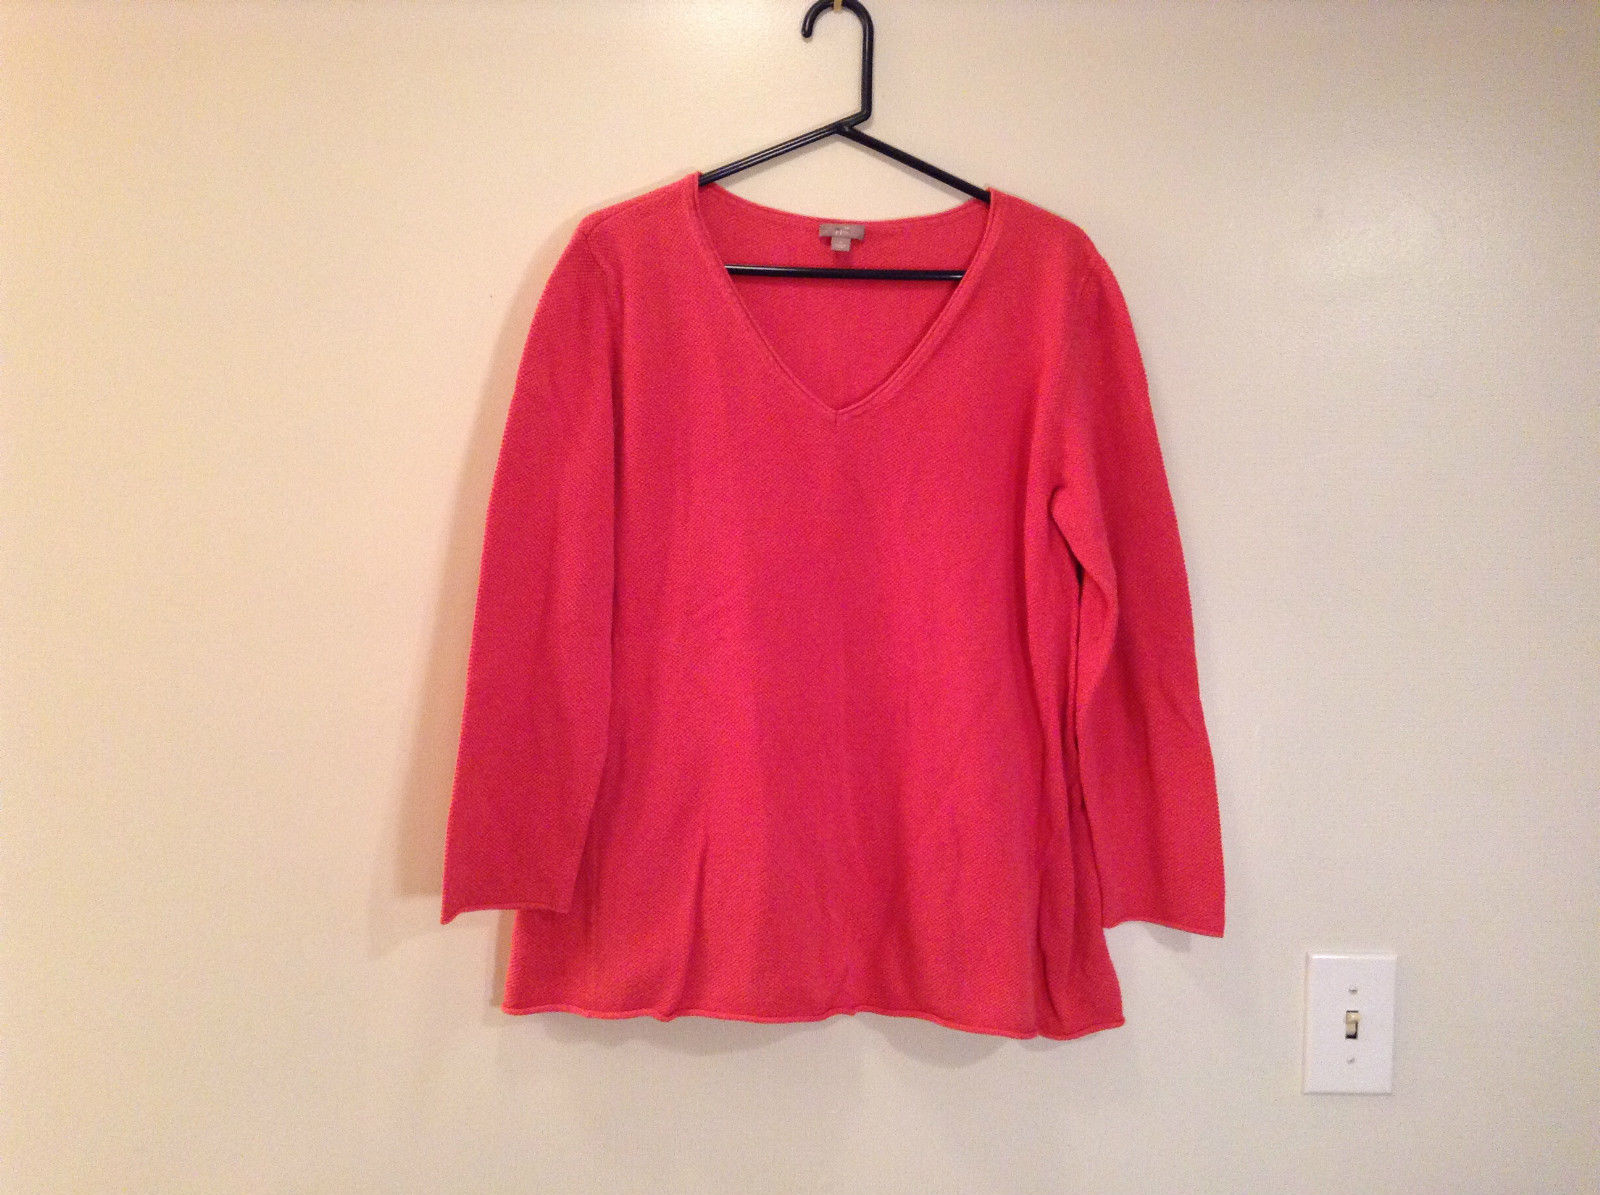 Coral Colored Long Sleeve V Neck Top by J Jill Sizes Large 65 Percent Cotton